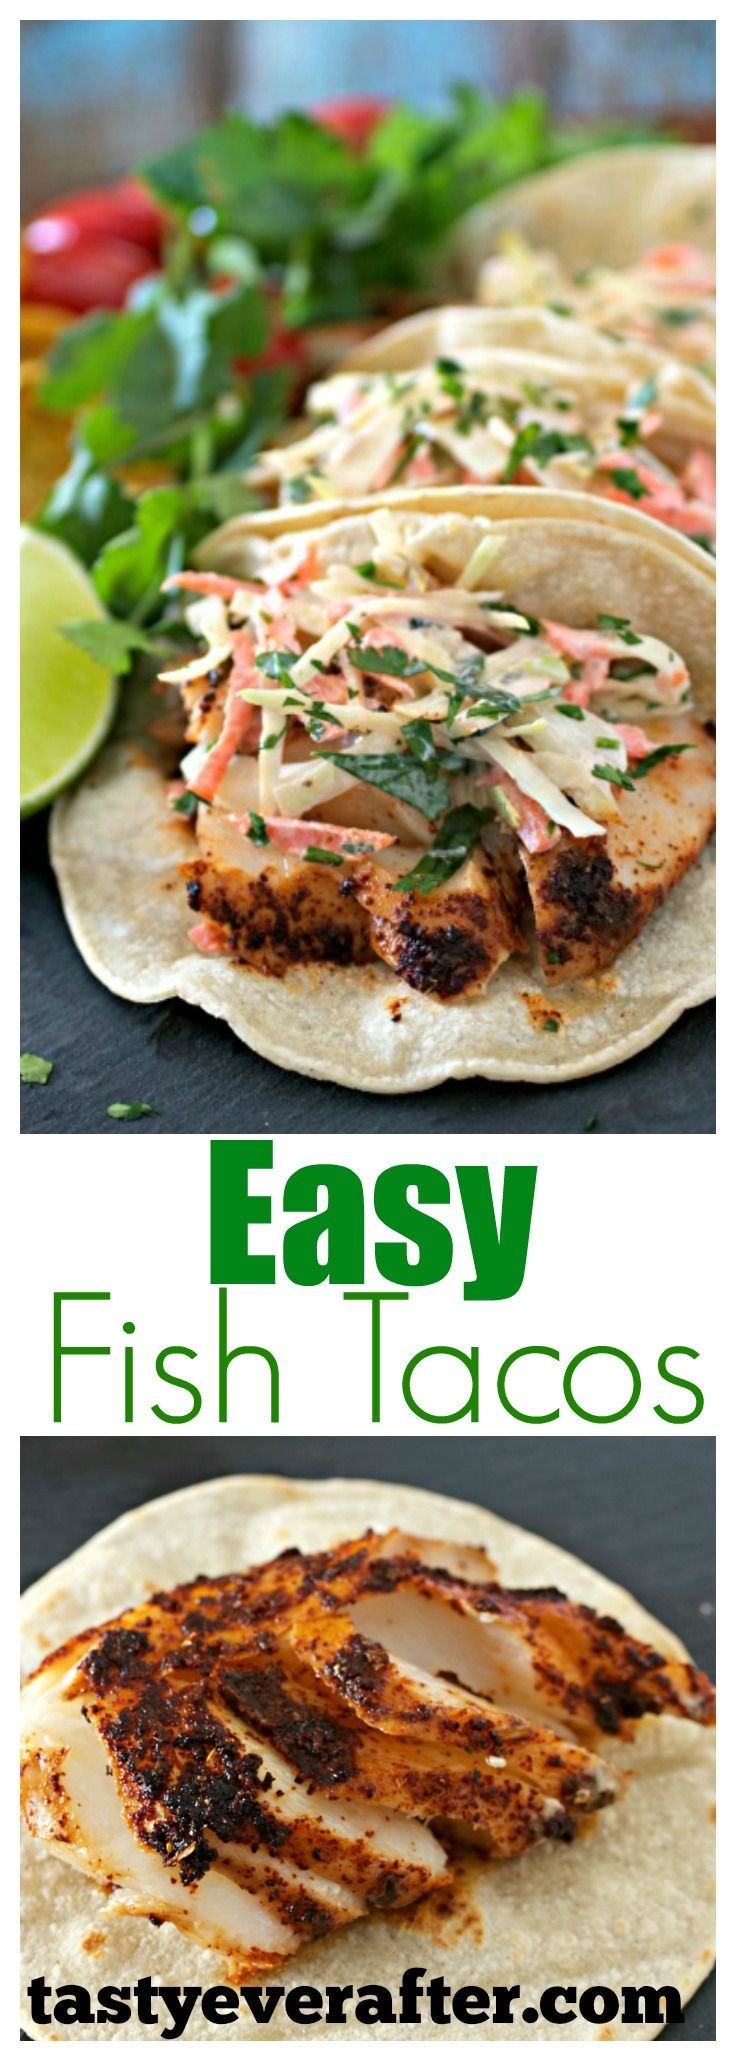 243 best tasty ever after recipes images on pinterest for Easy healthy fish recipes